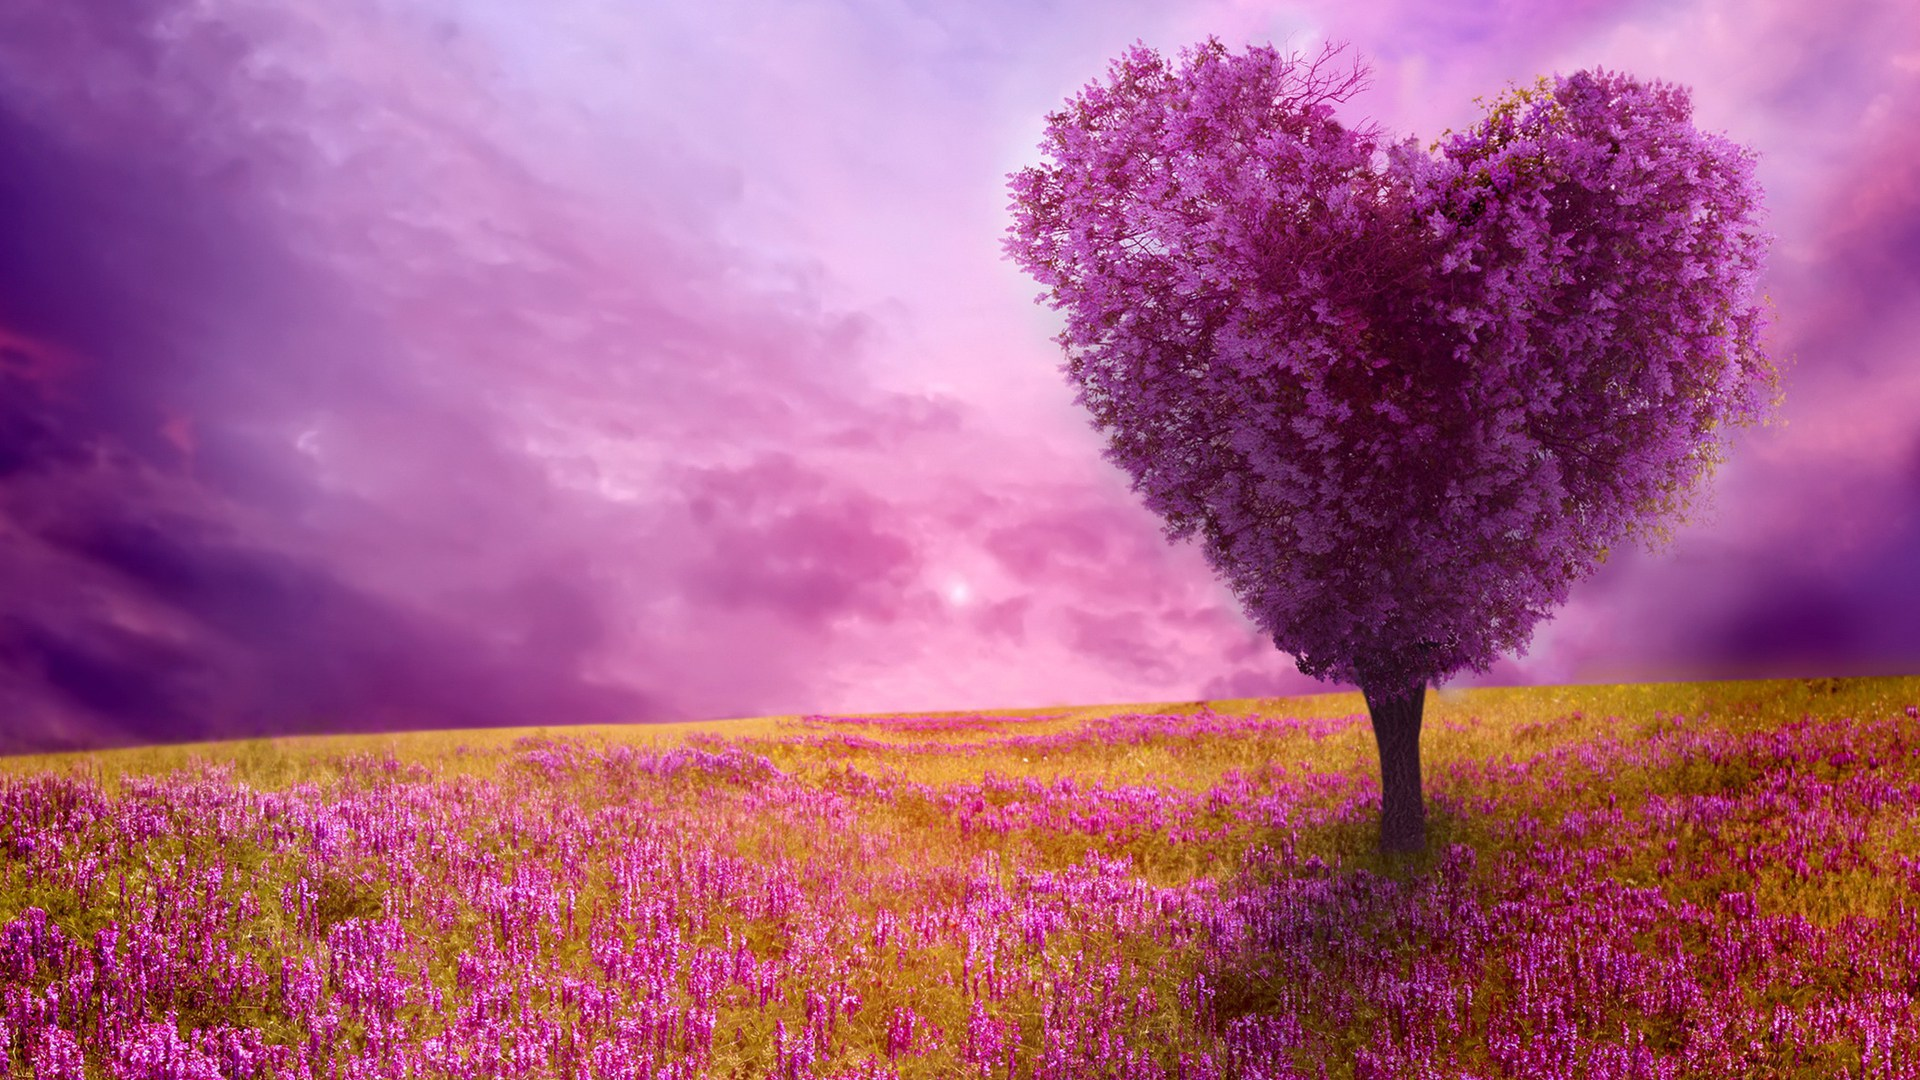 Beautiful Spring images download 1920x1080